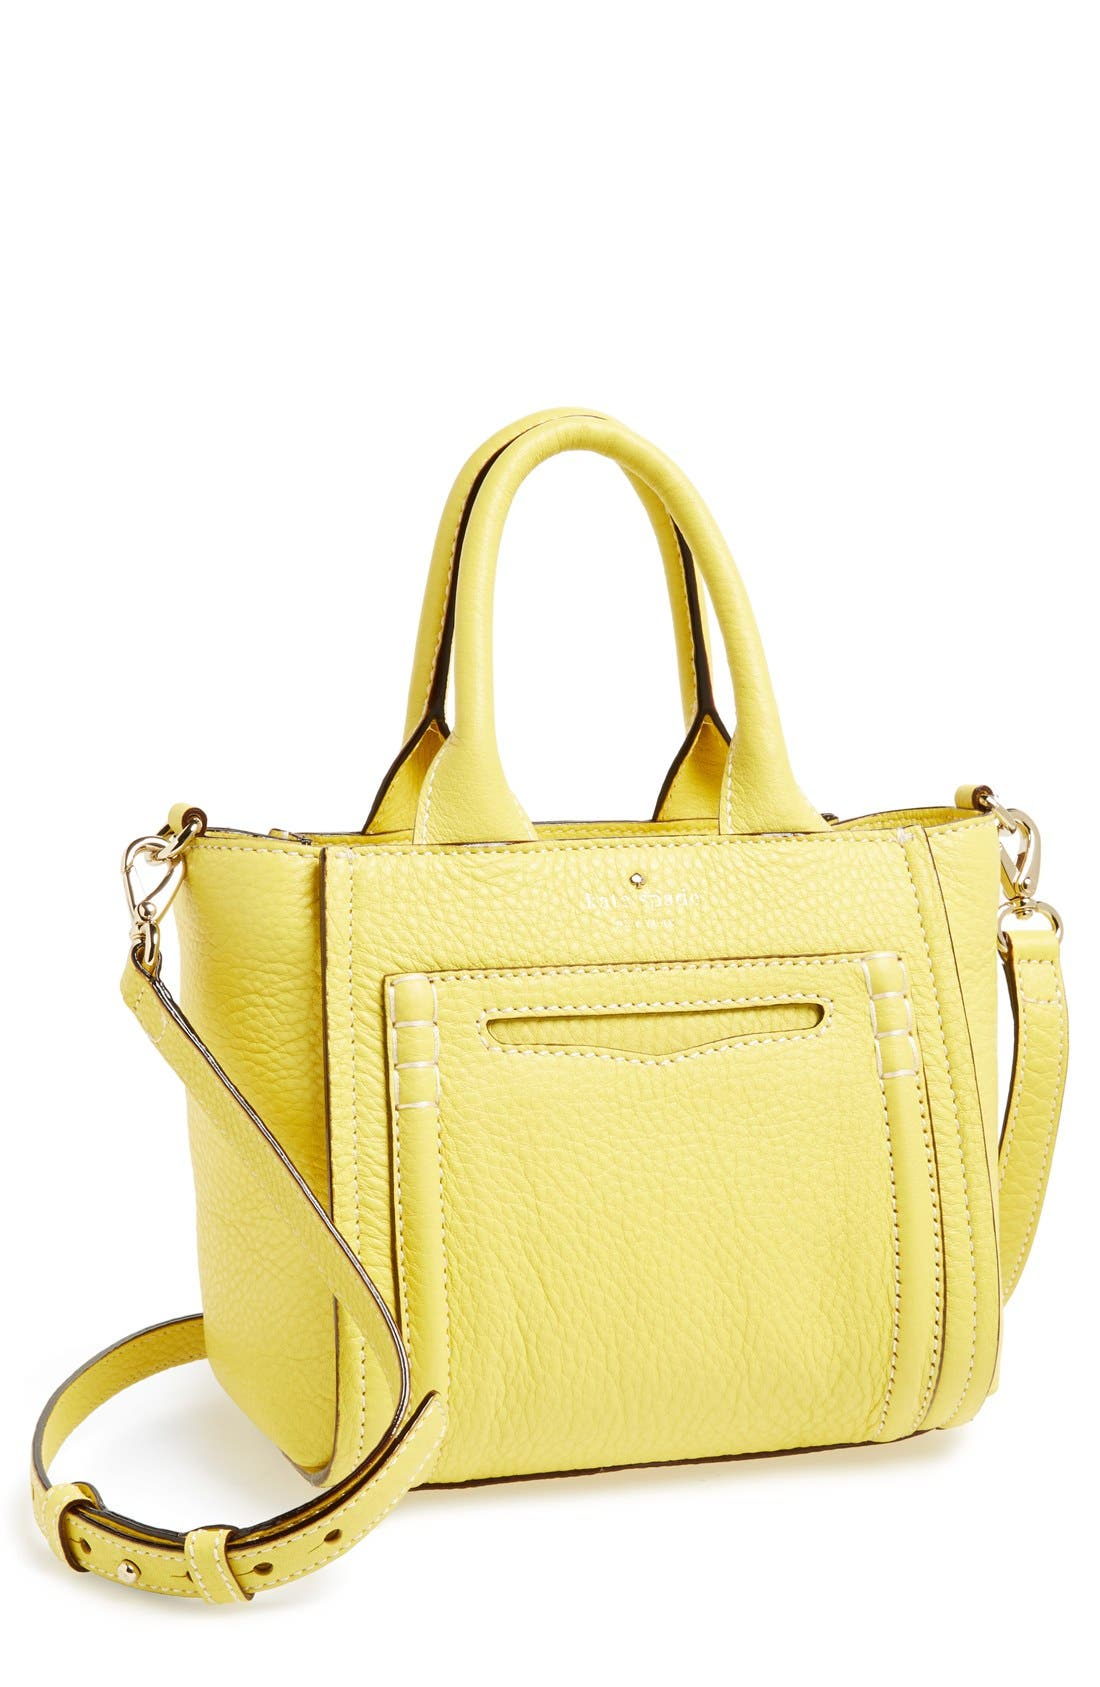 Main Image - kate spade new york 'small claremont drive marcella' leather crossbody satchel